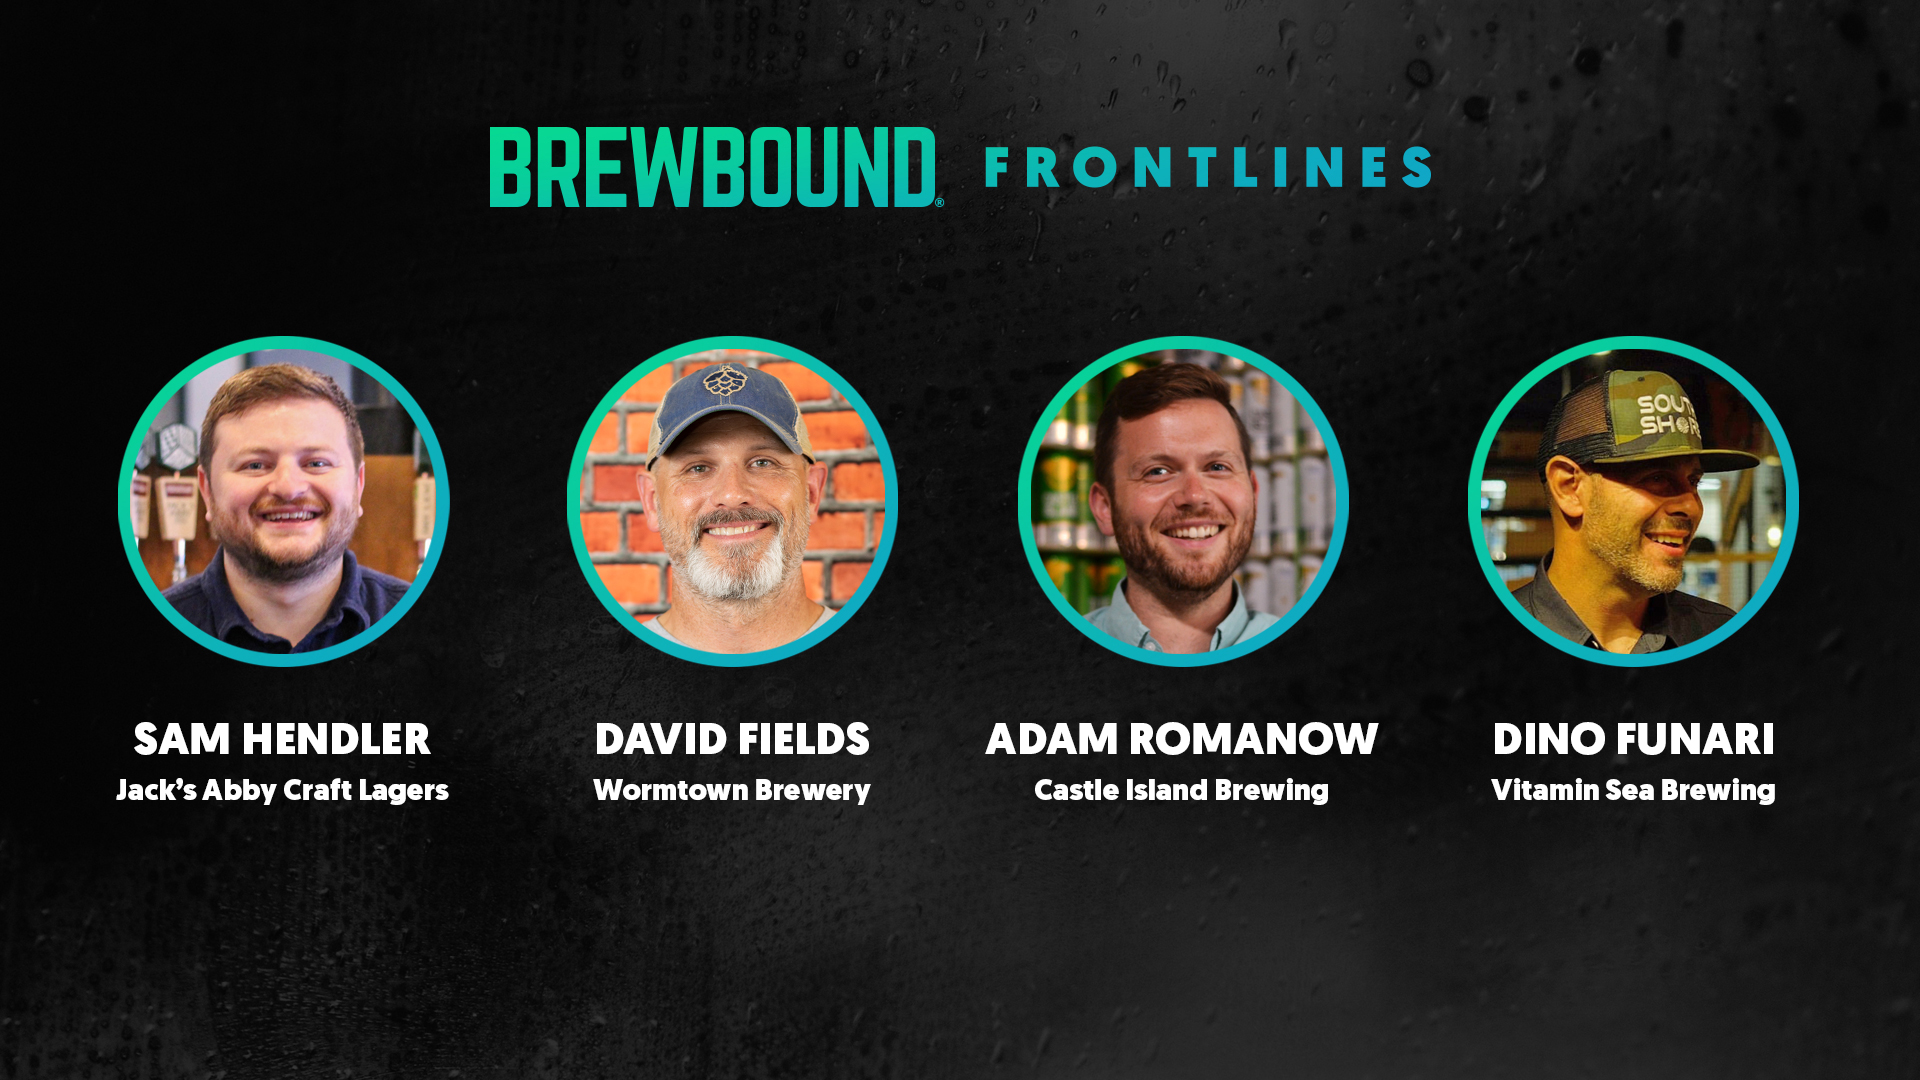 Brewbound Frontlines: Massachusetts Brewery Leaders Discuss 2019 Volume Growth, Effects of COVID-19